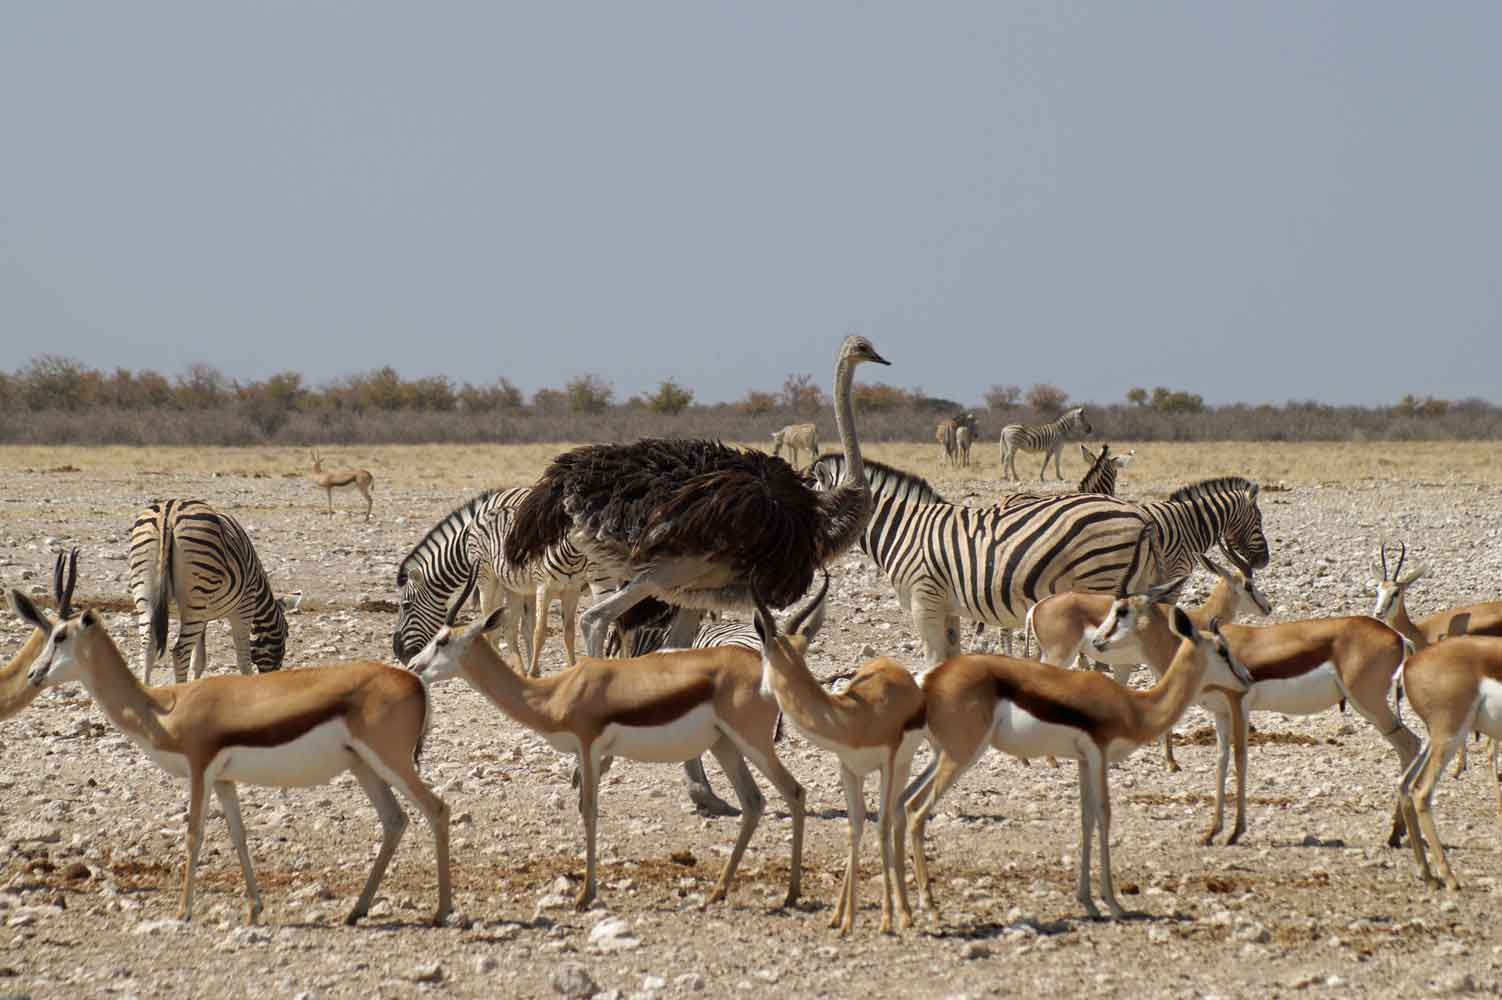 Safari im Etosha Nationalpark